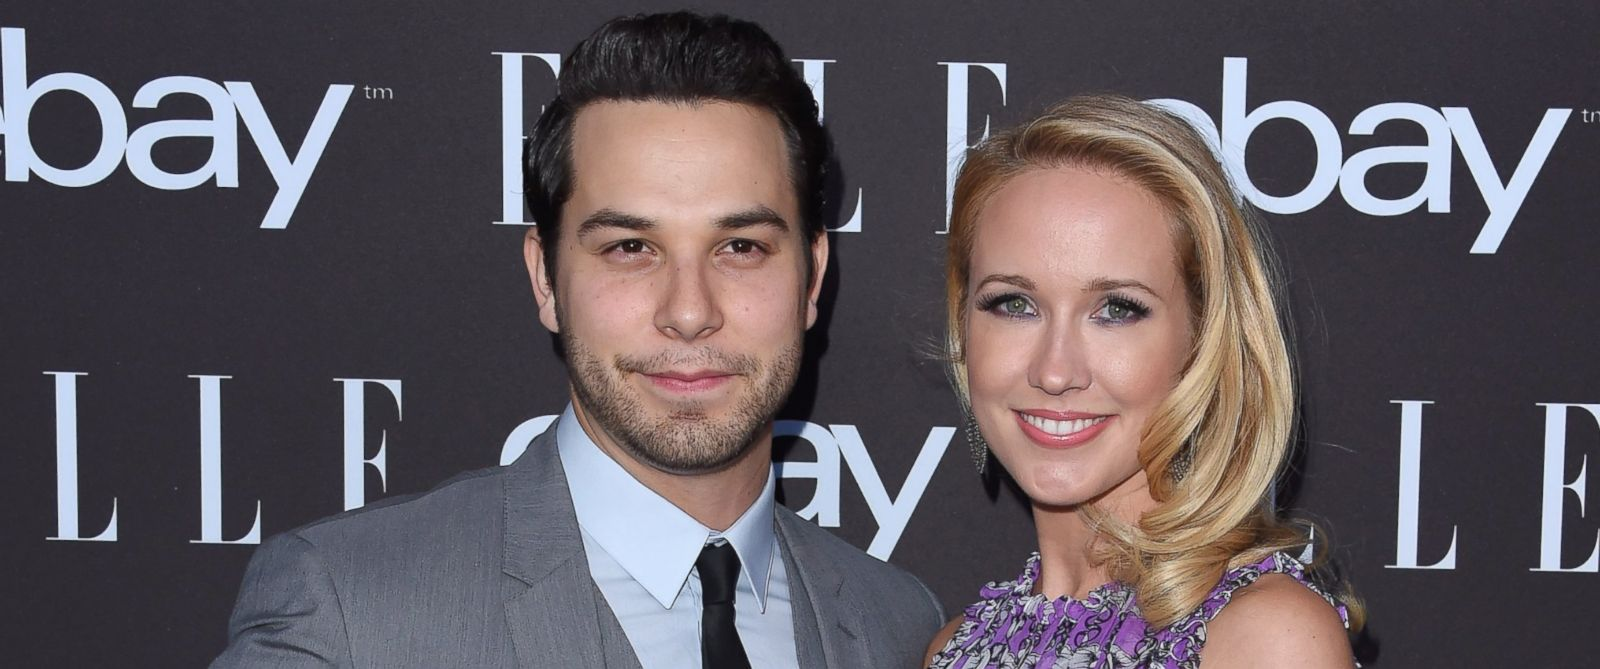 PHOTO: Actors Skylar Astin and Anna Camp arrive at the 6th Annual ELLE Women In Music Celebration Presented by eBay, May 20, 2015 in Hollywood, Calif.